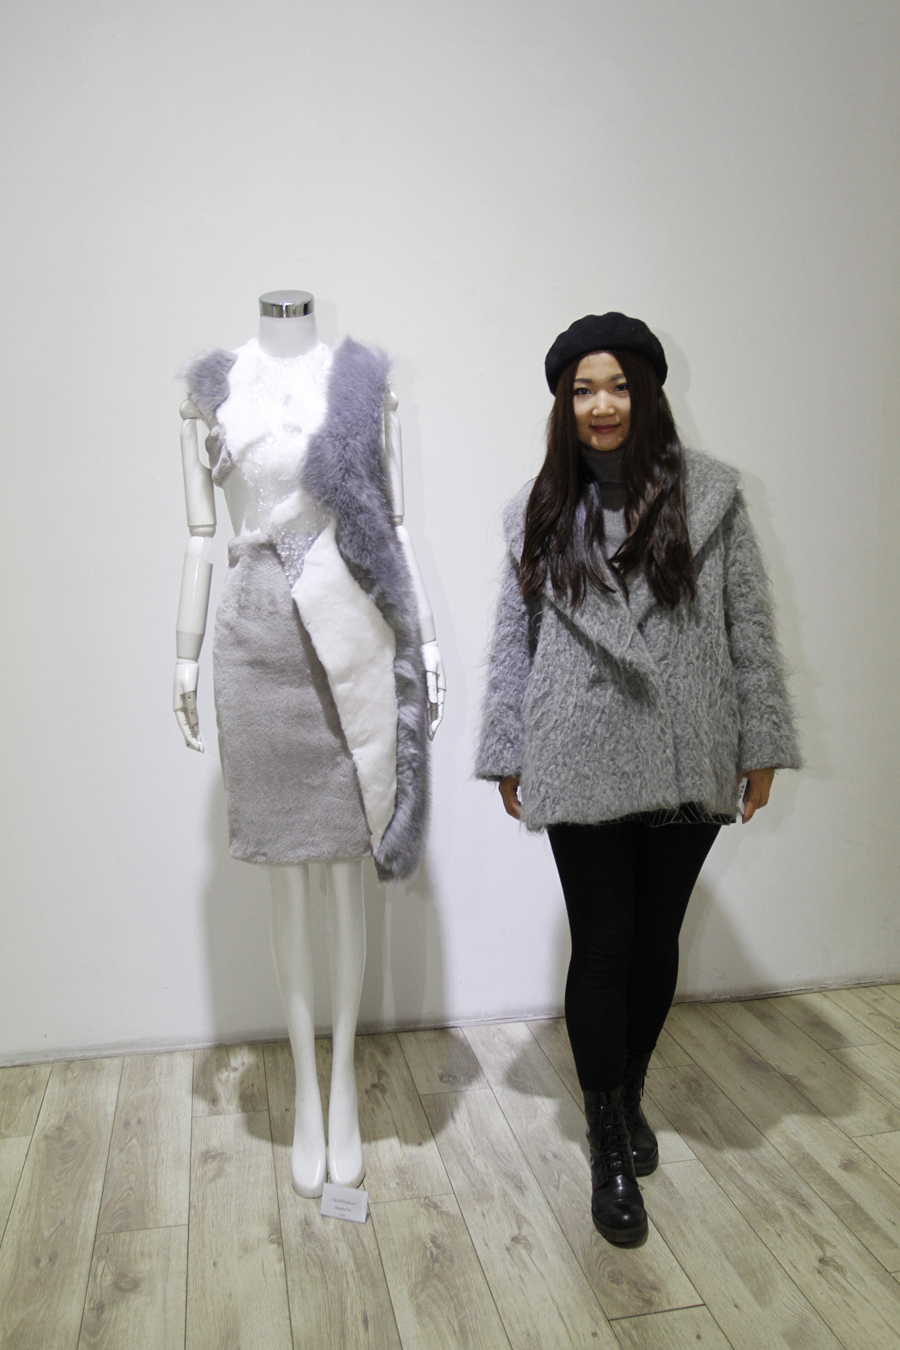 2015 Fashion Art hisheji 01 (16)